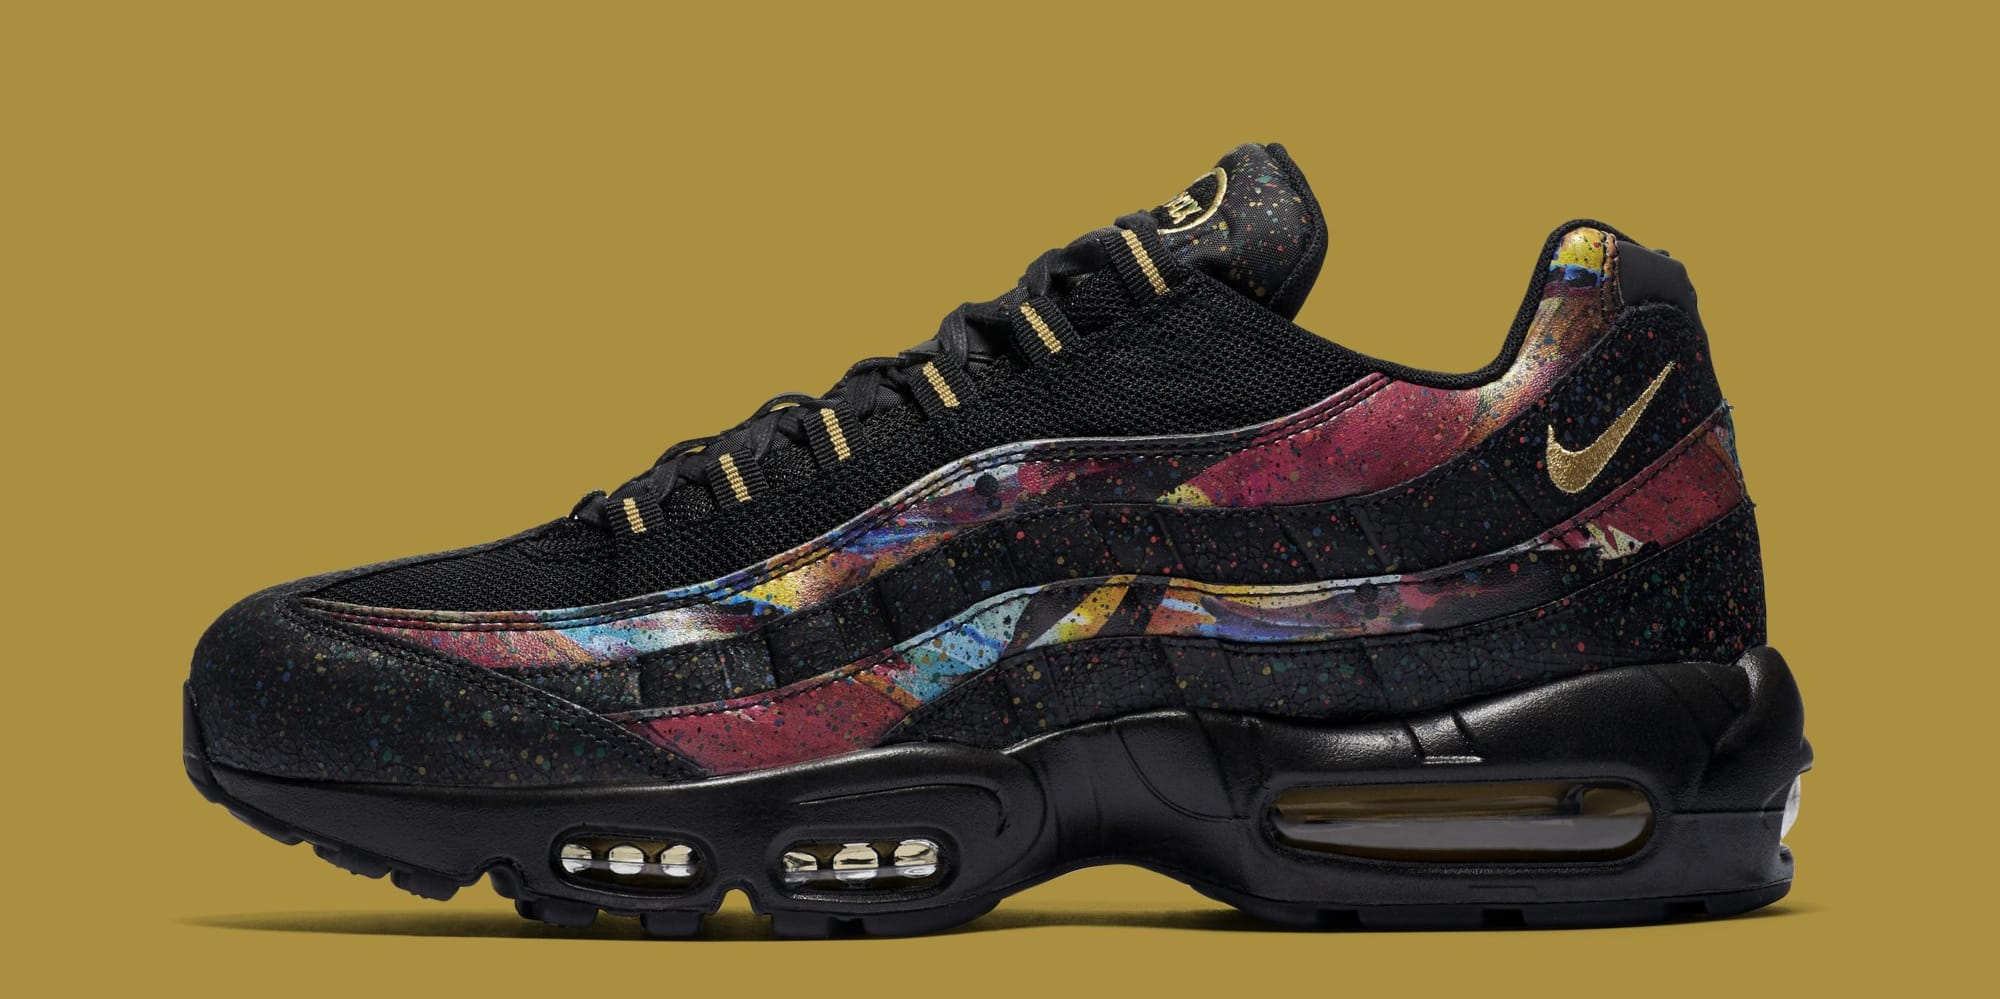 new style ab8ee 5b13e Nike Air Force 1 Low Air Max 95 'Caribana' Pack Release Date ...